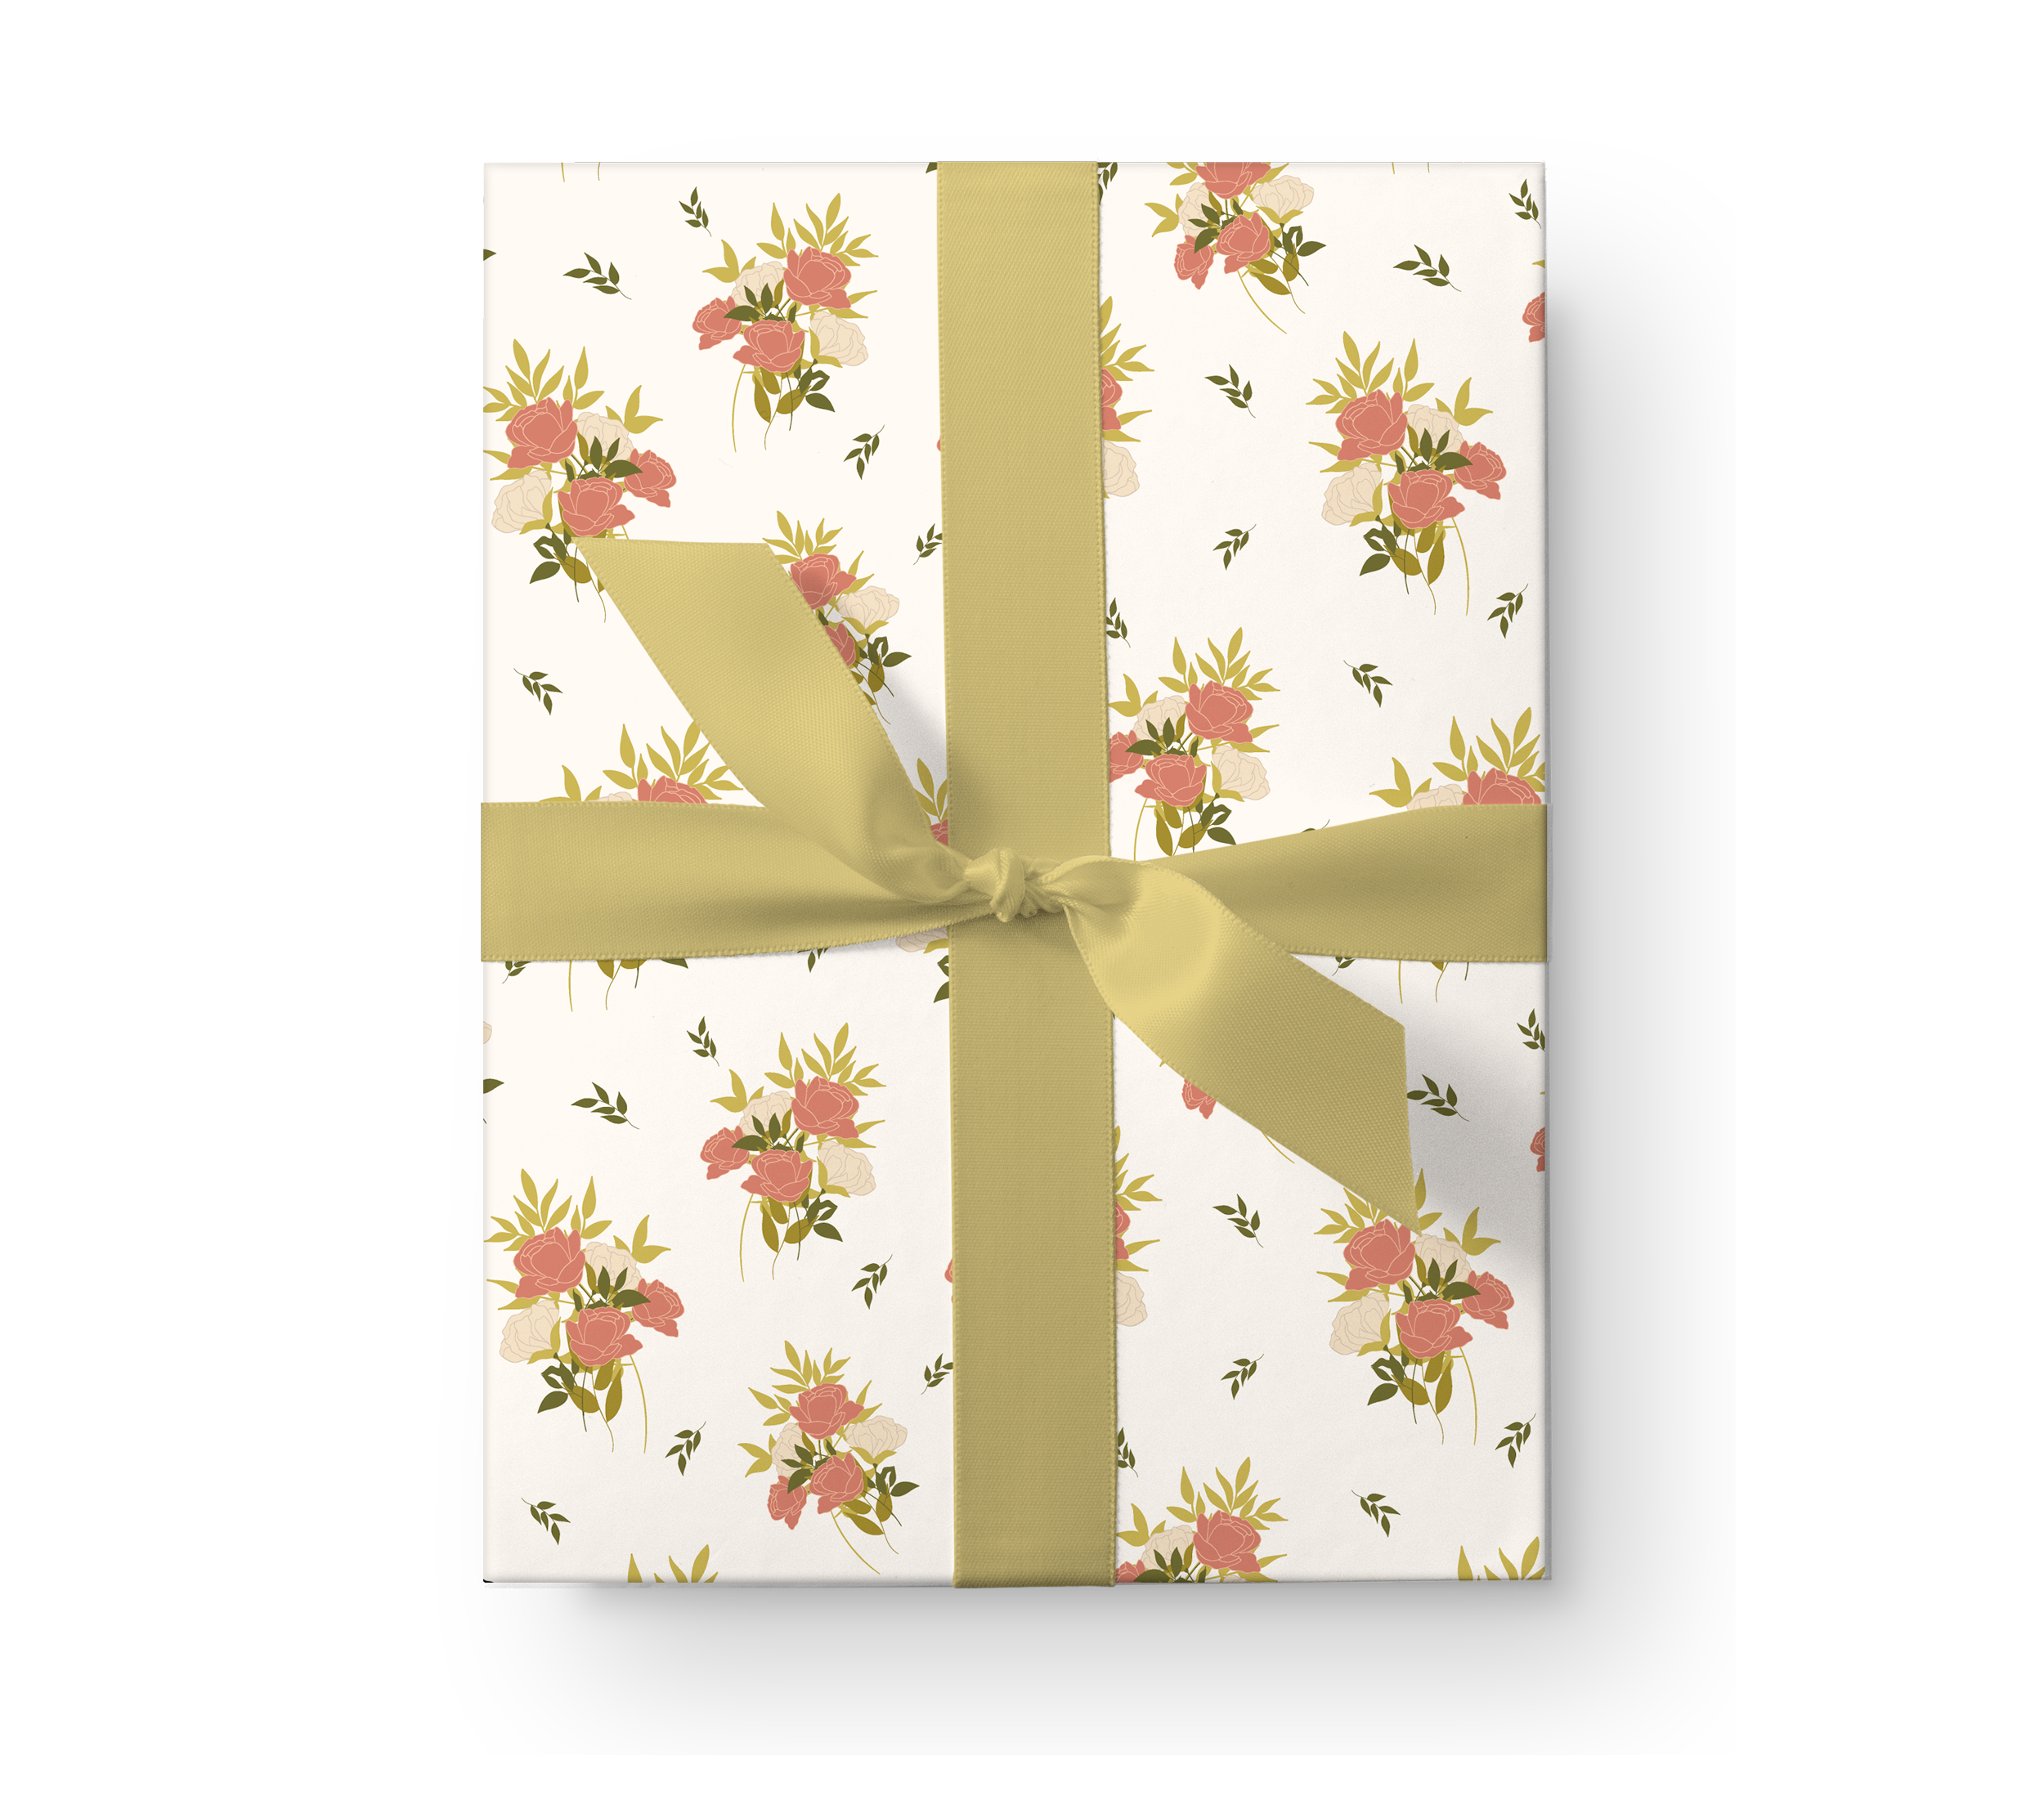 Illustrated wrapping paper gift box with a beautiful rose bouquet floral pattern on a cream background.